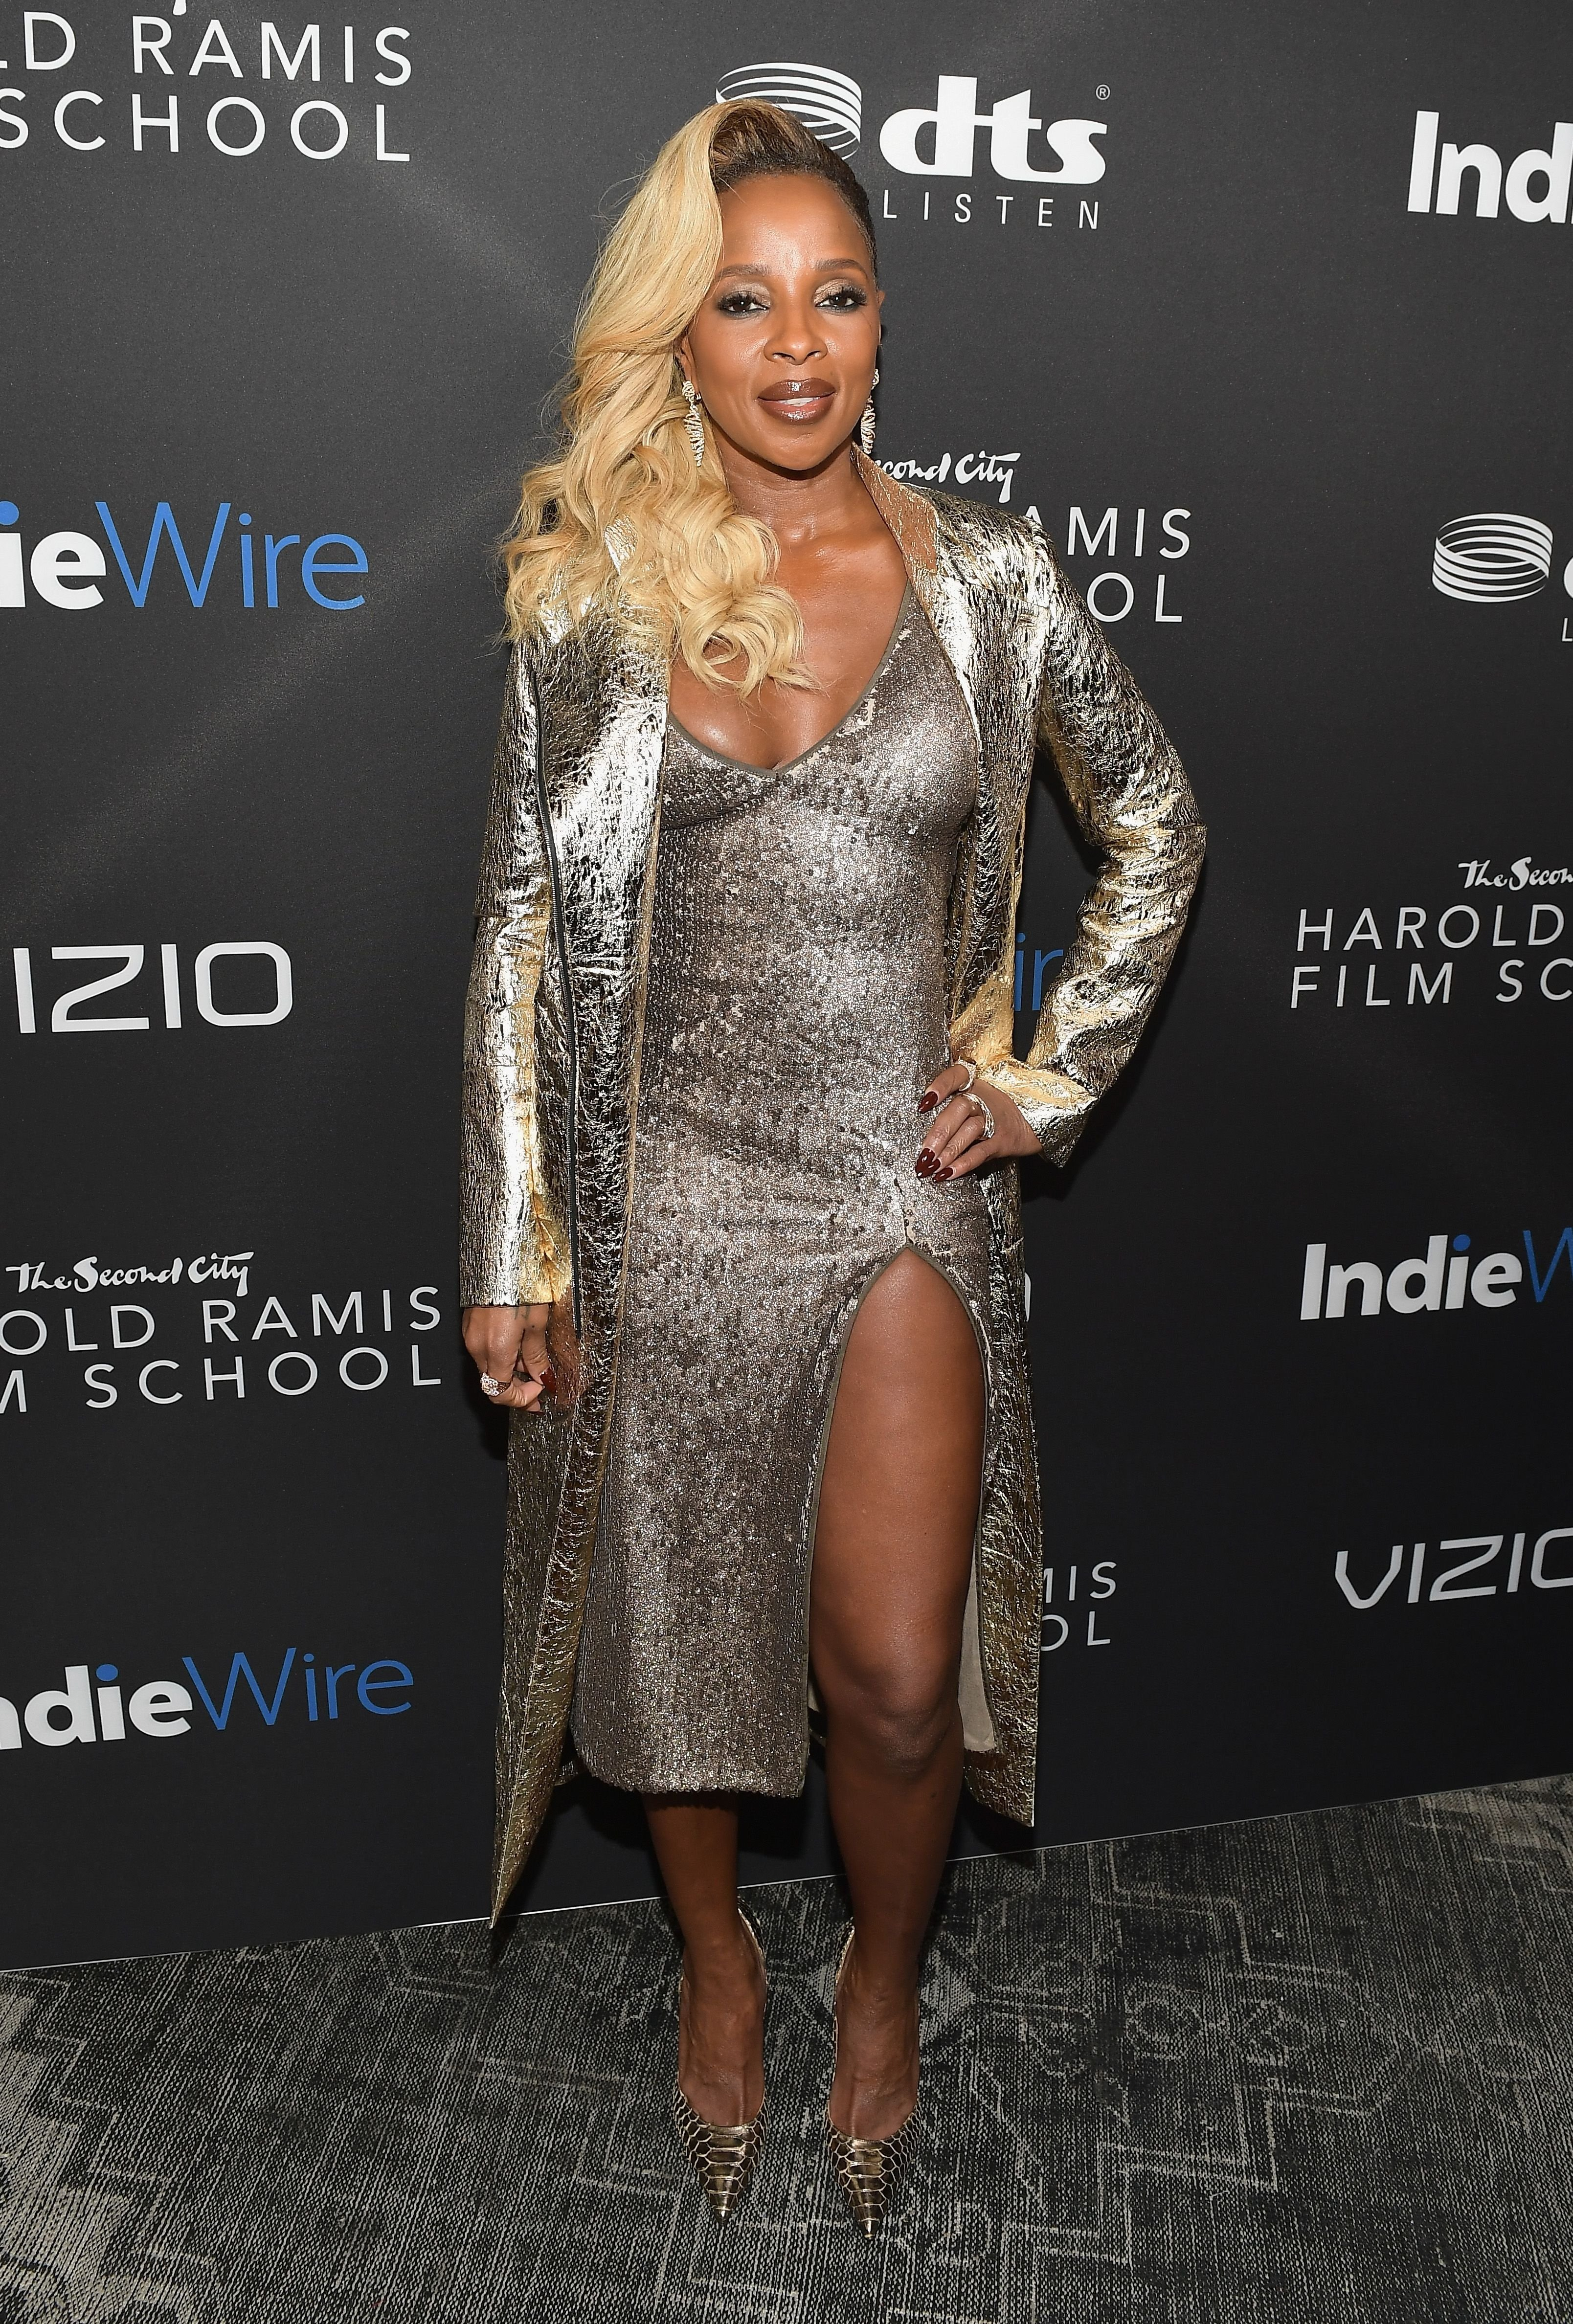 Singer Mary J. Blige attending the Inaugural IndieWire Honors in California in November 2017. | Photo: Getty Images